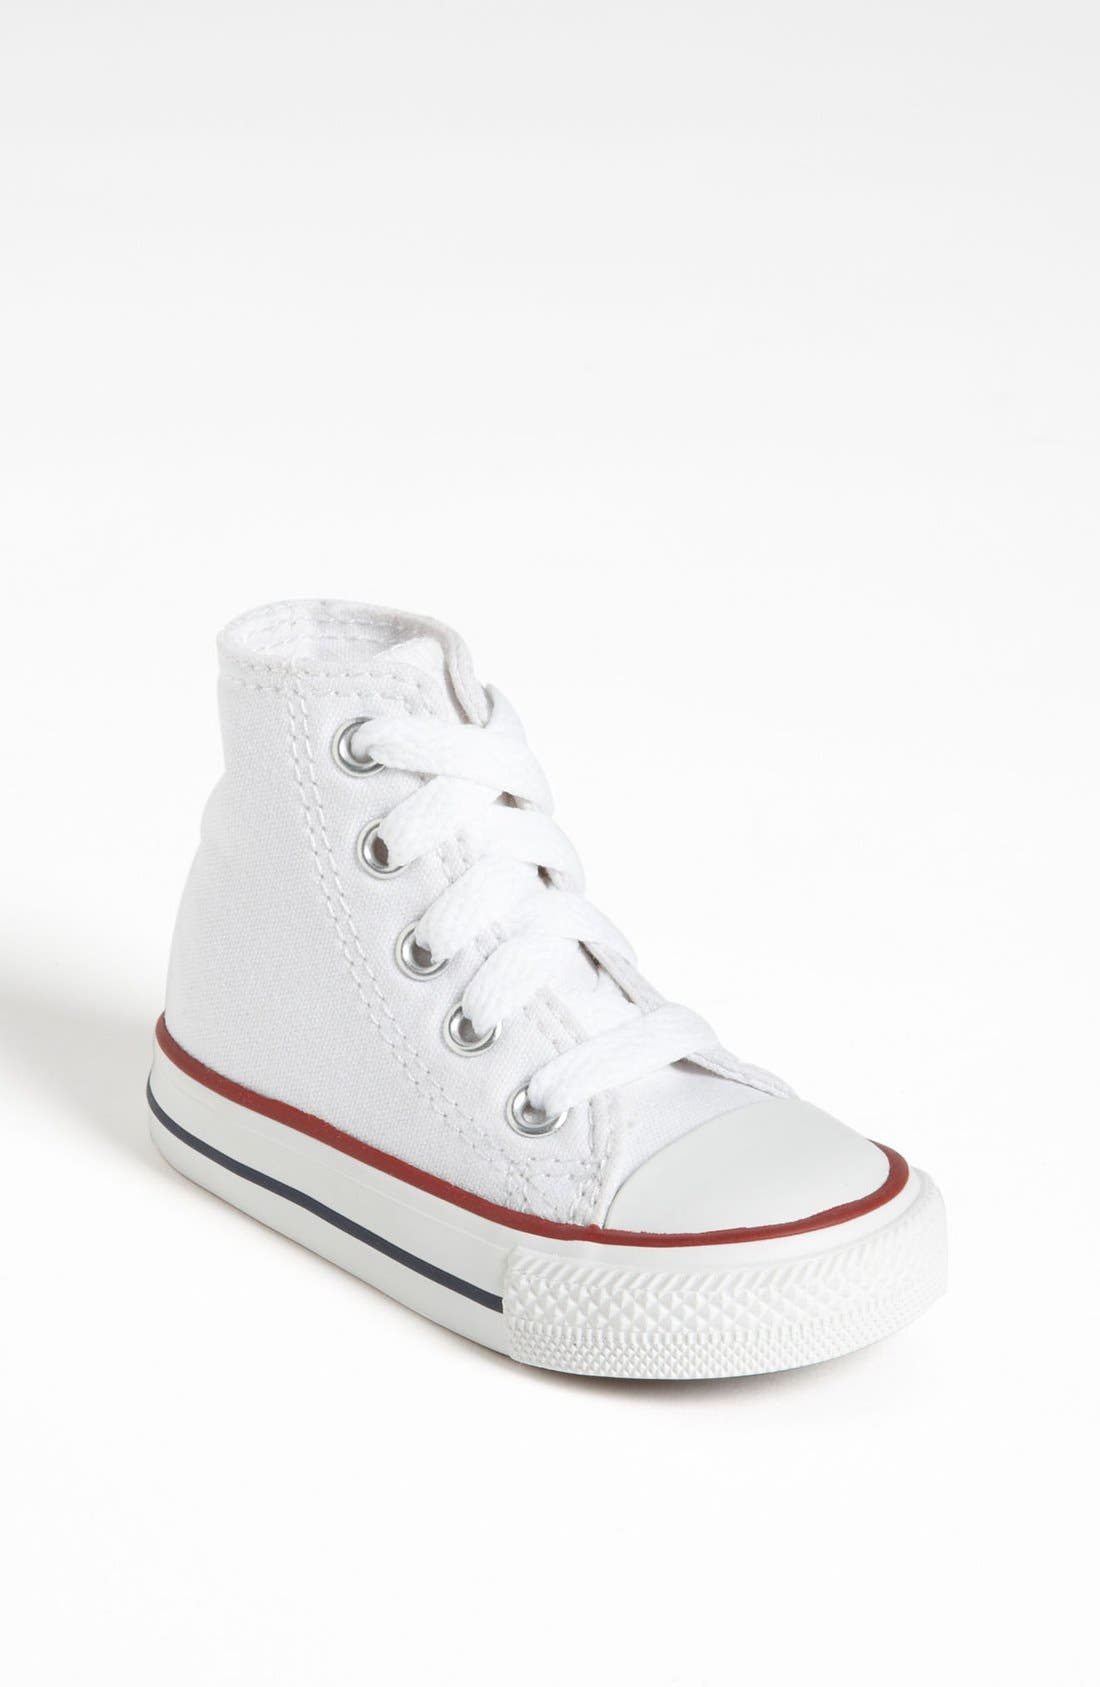 All Star<sup>®</sup> High Top Sneaker,                         Main,                         color, OPTIC WHITE